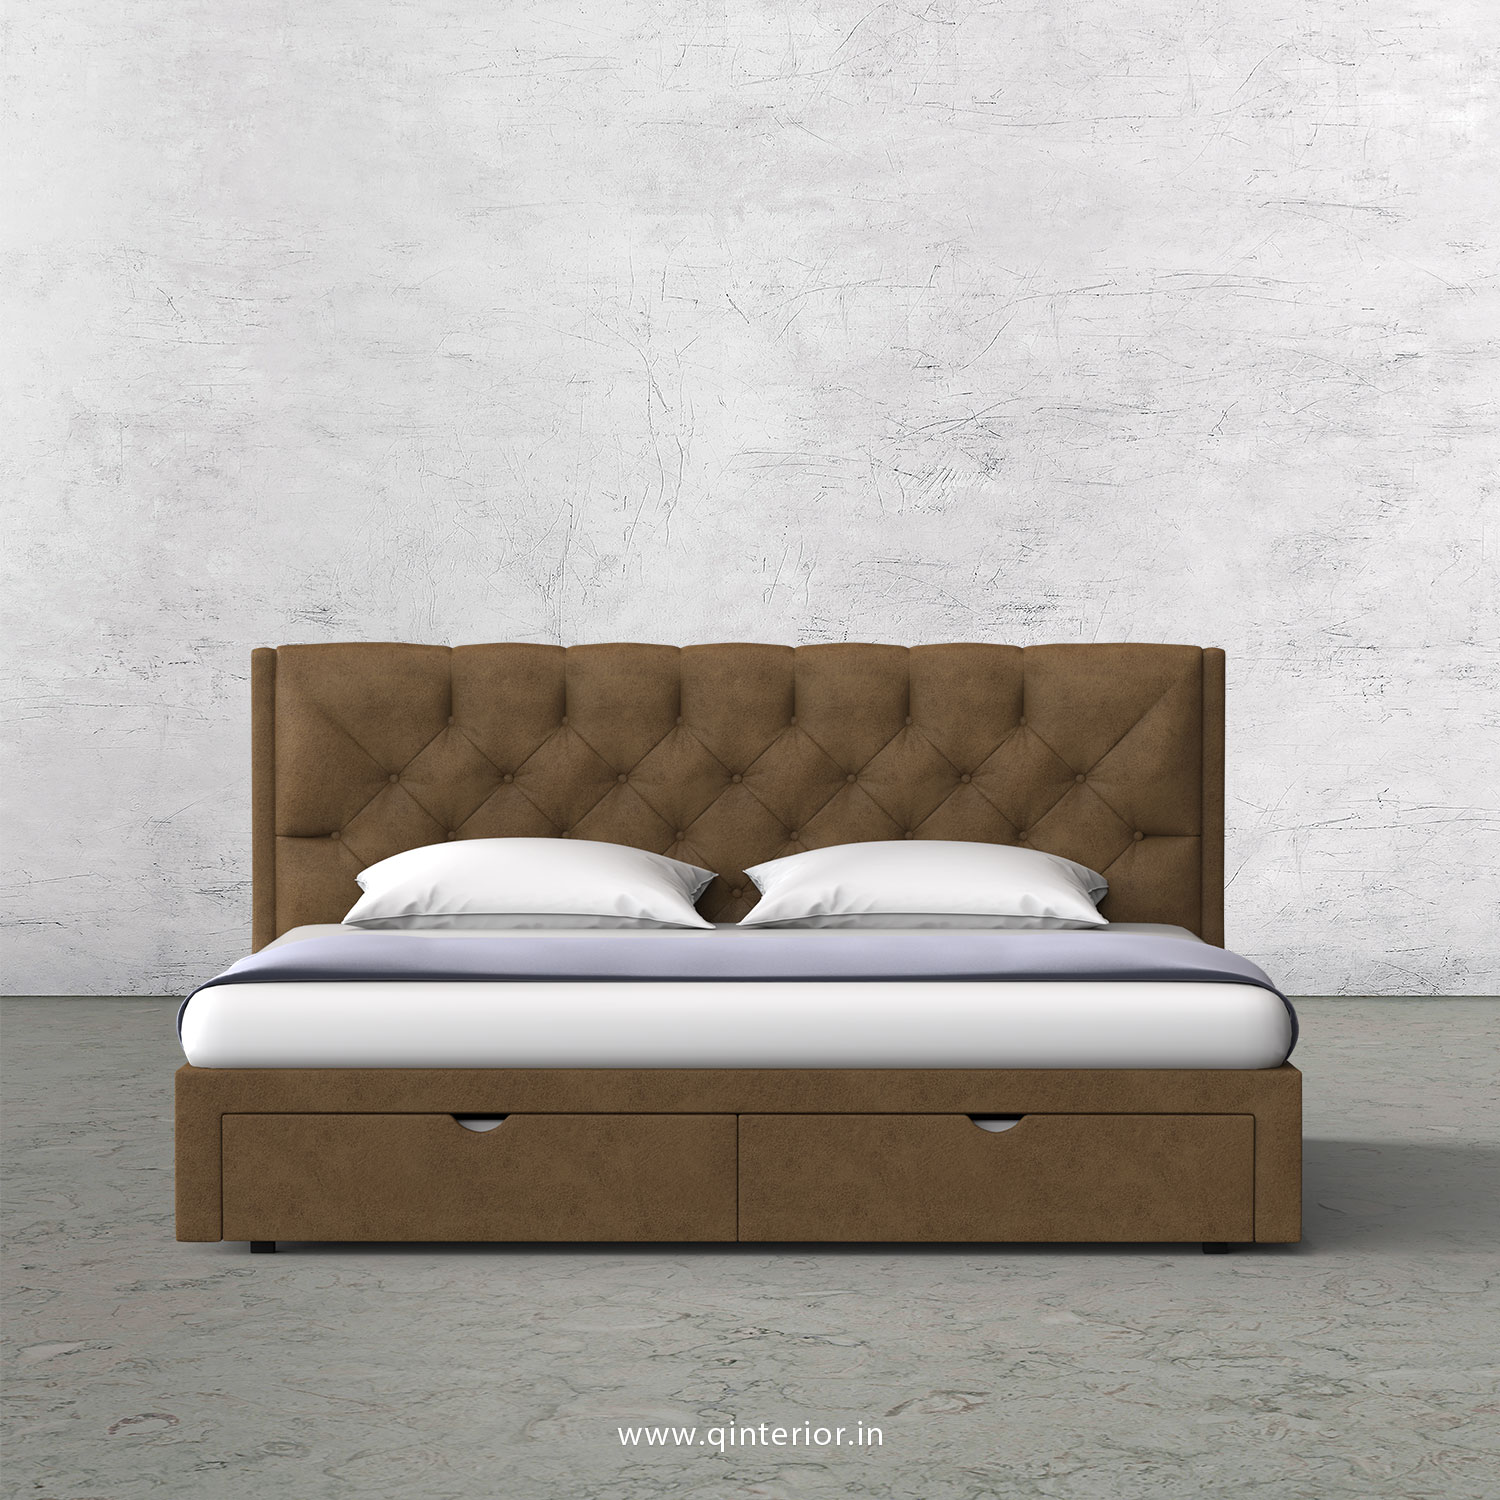 Scorpius King Size Storage Bed in Fab Leather Fabric - KBD001 FL02